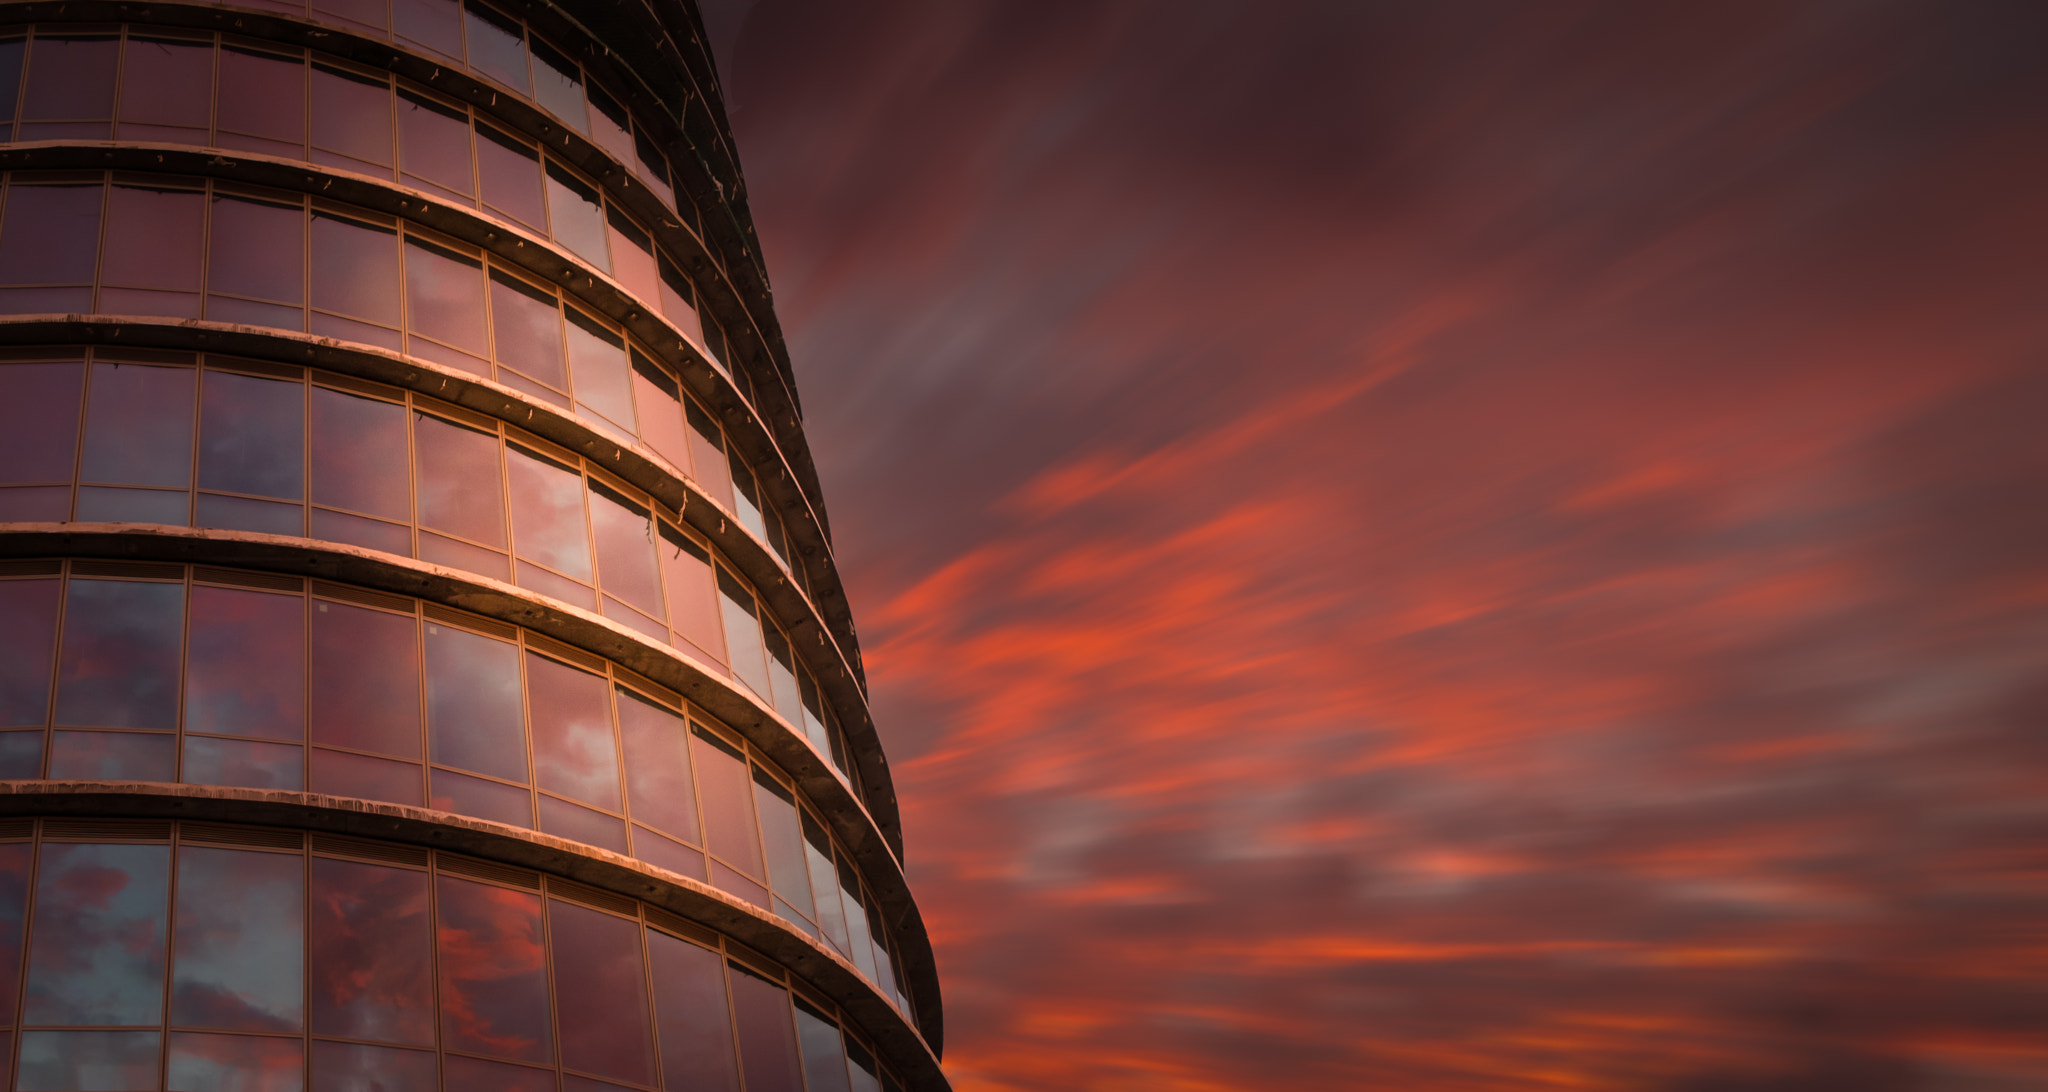 Photograph Pelli in Red by Hani Latif Zaloum on 500px